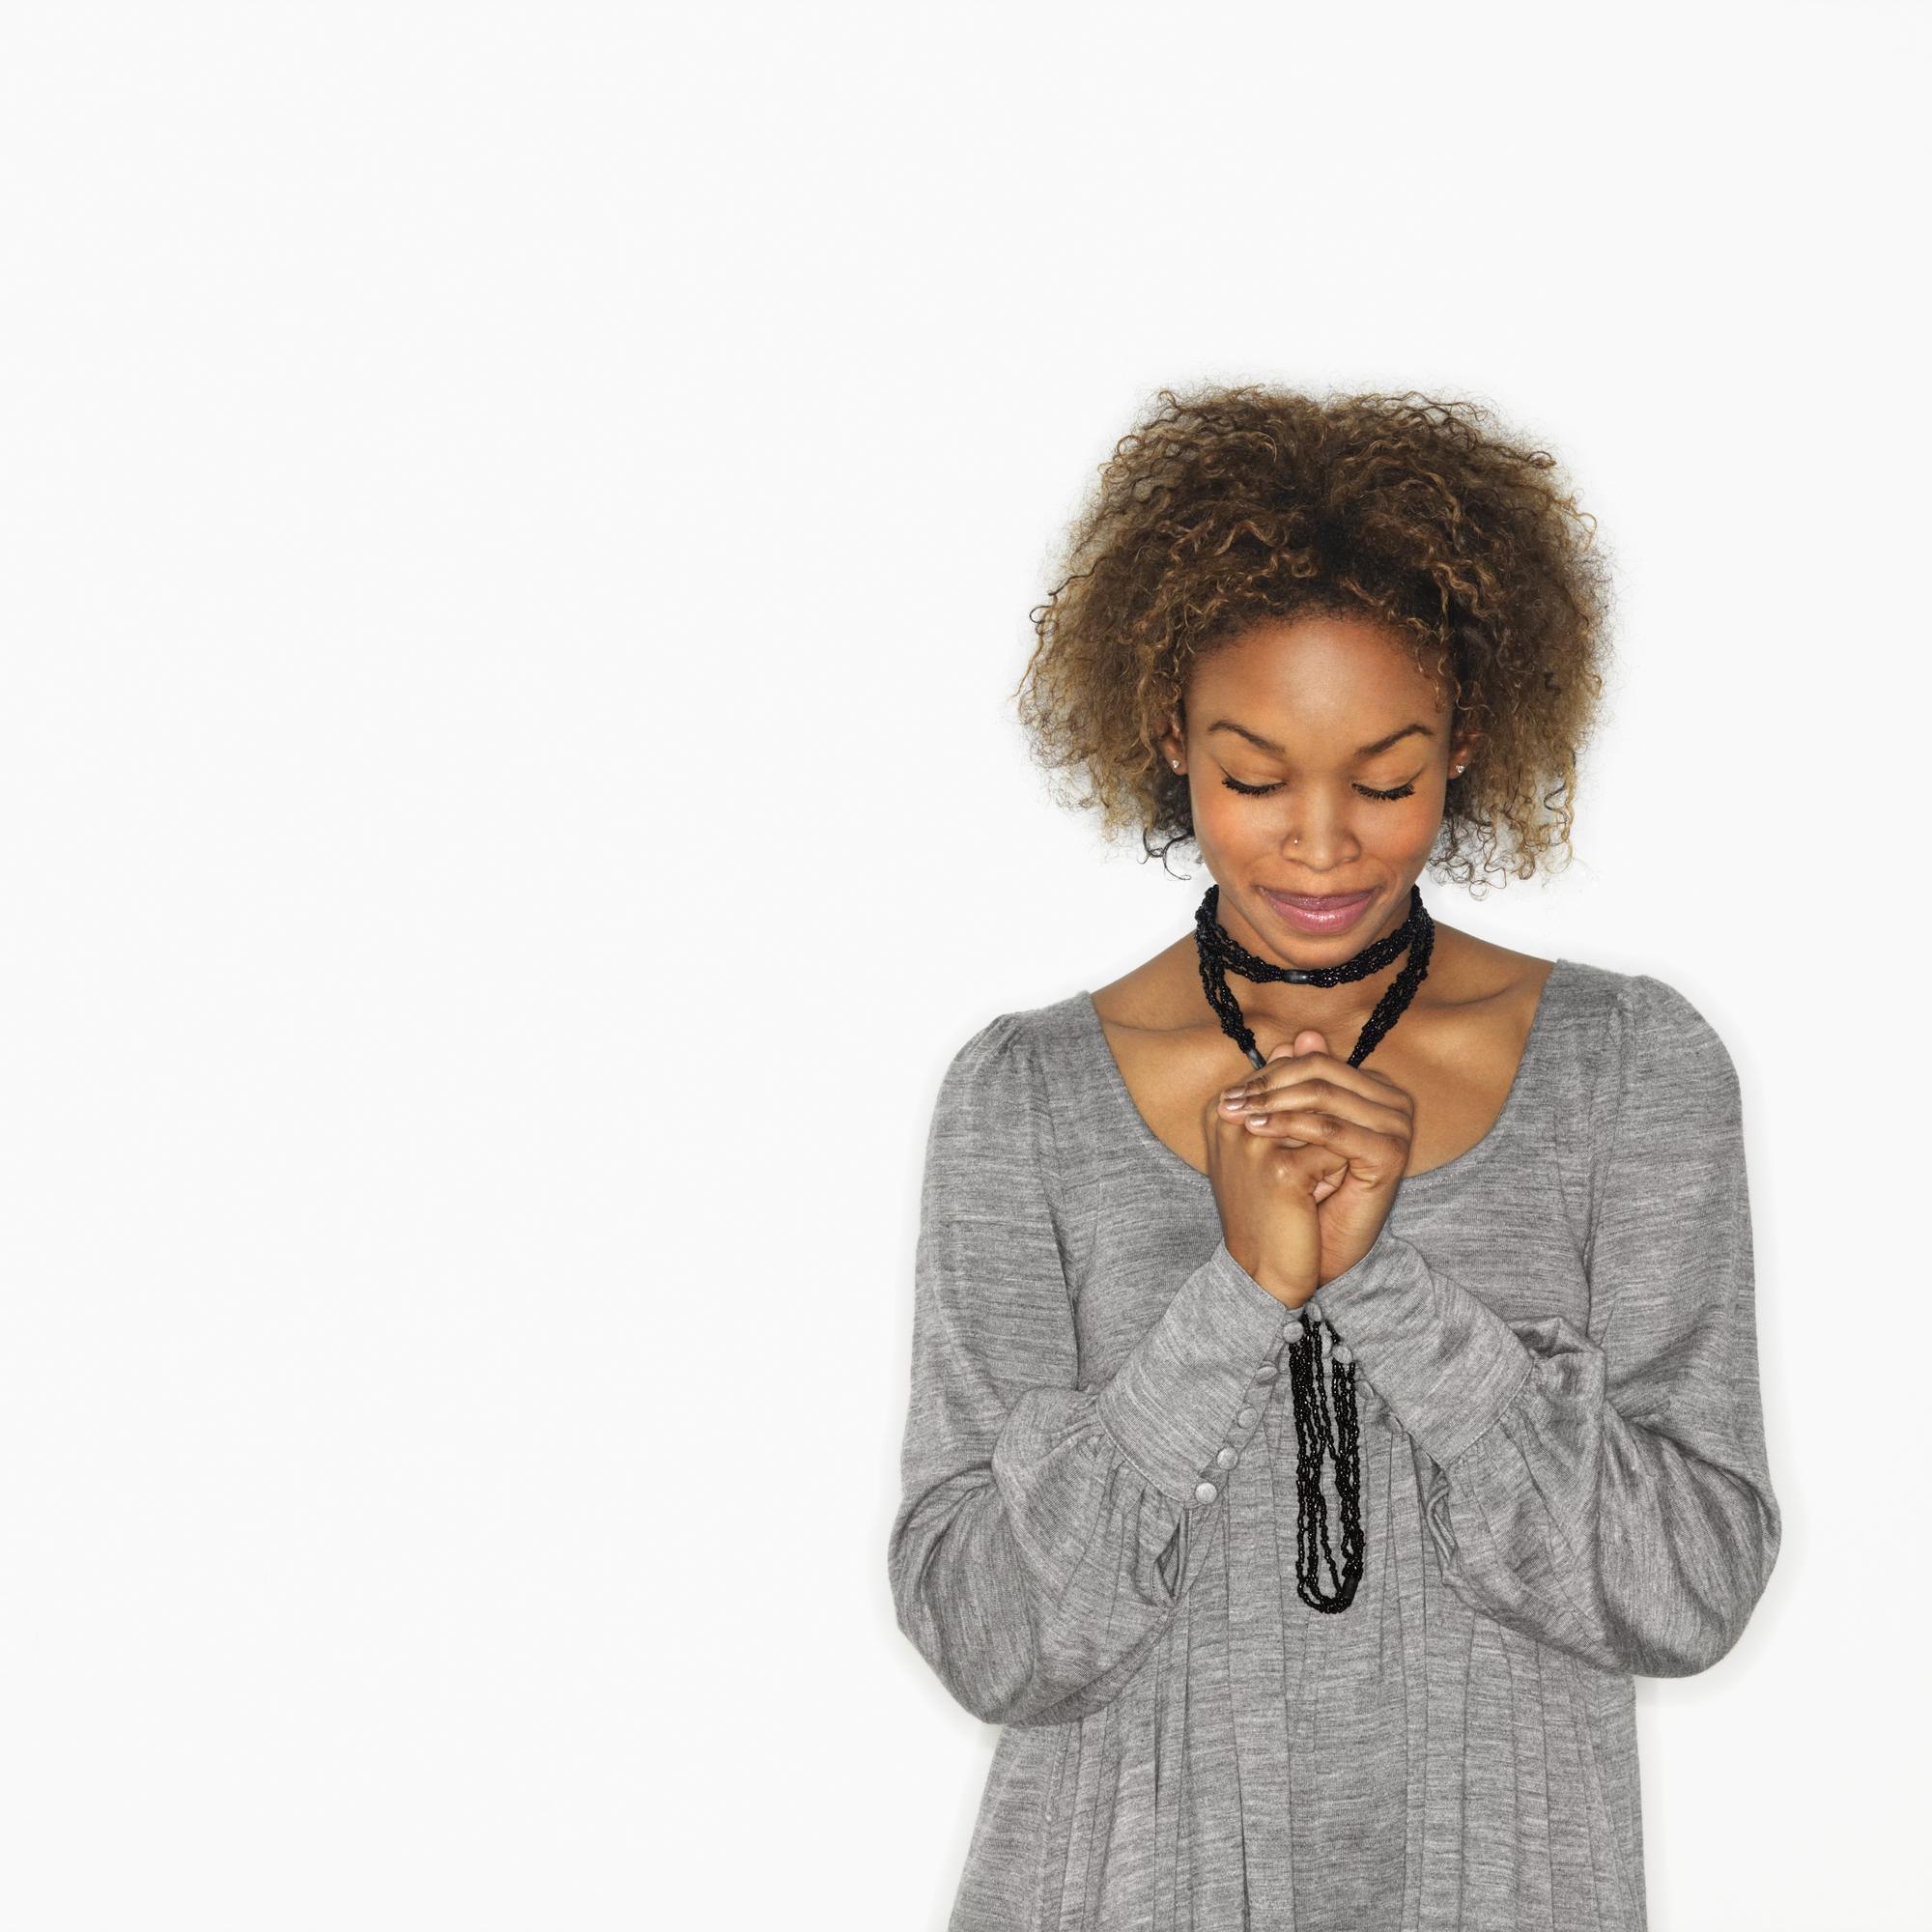 Woman praying | 4 easy ways to bring more spirituality into your work